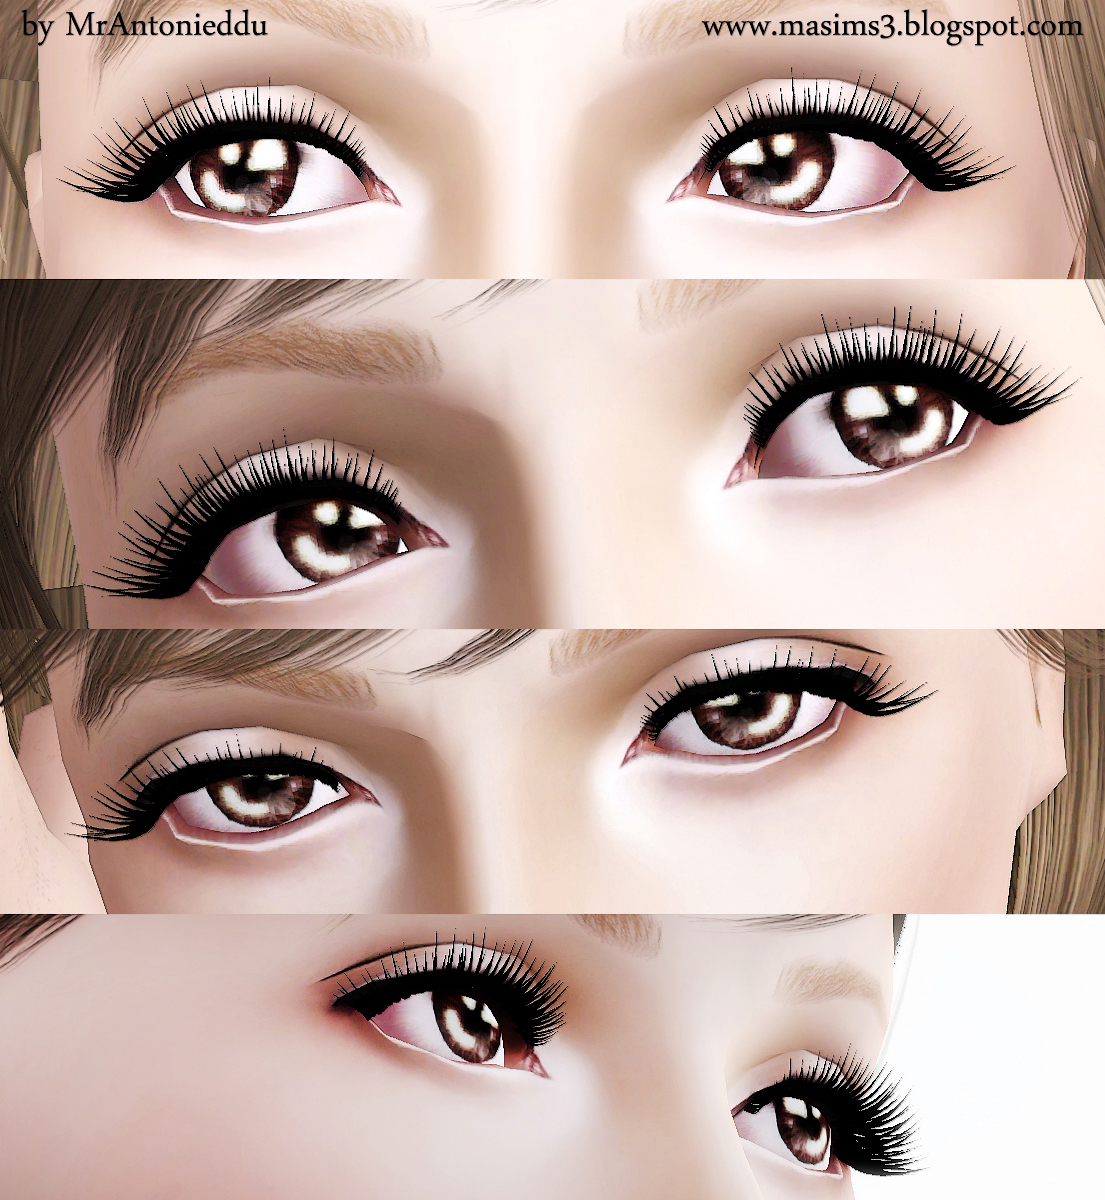 3D Eyelashes by MrAntonieddu